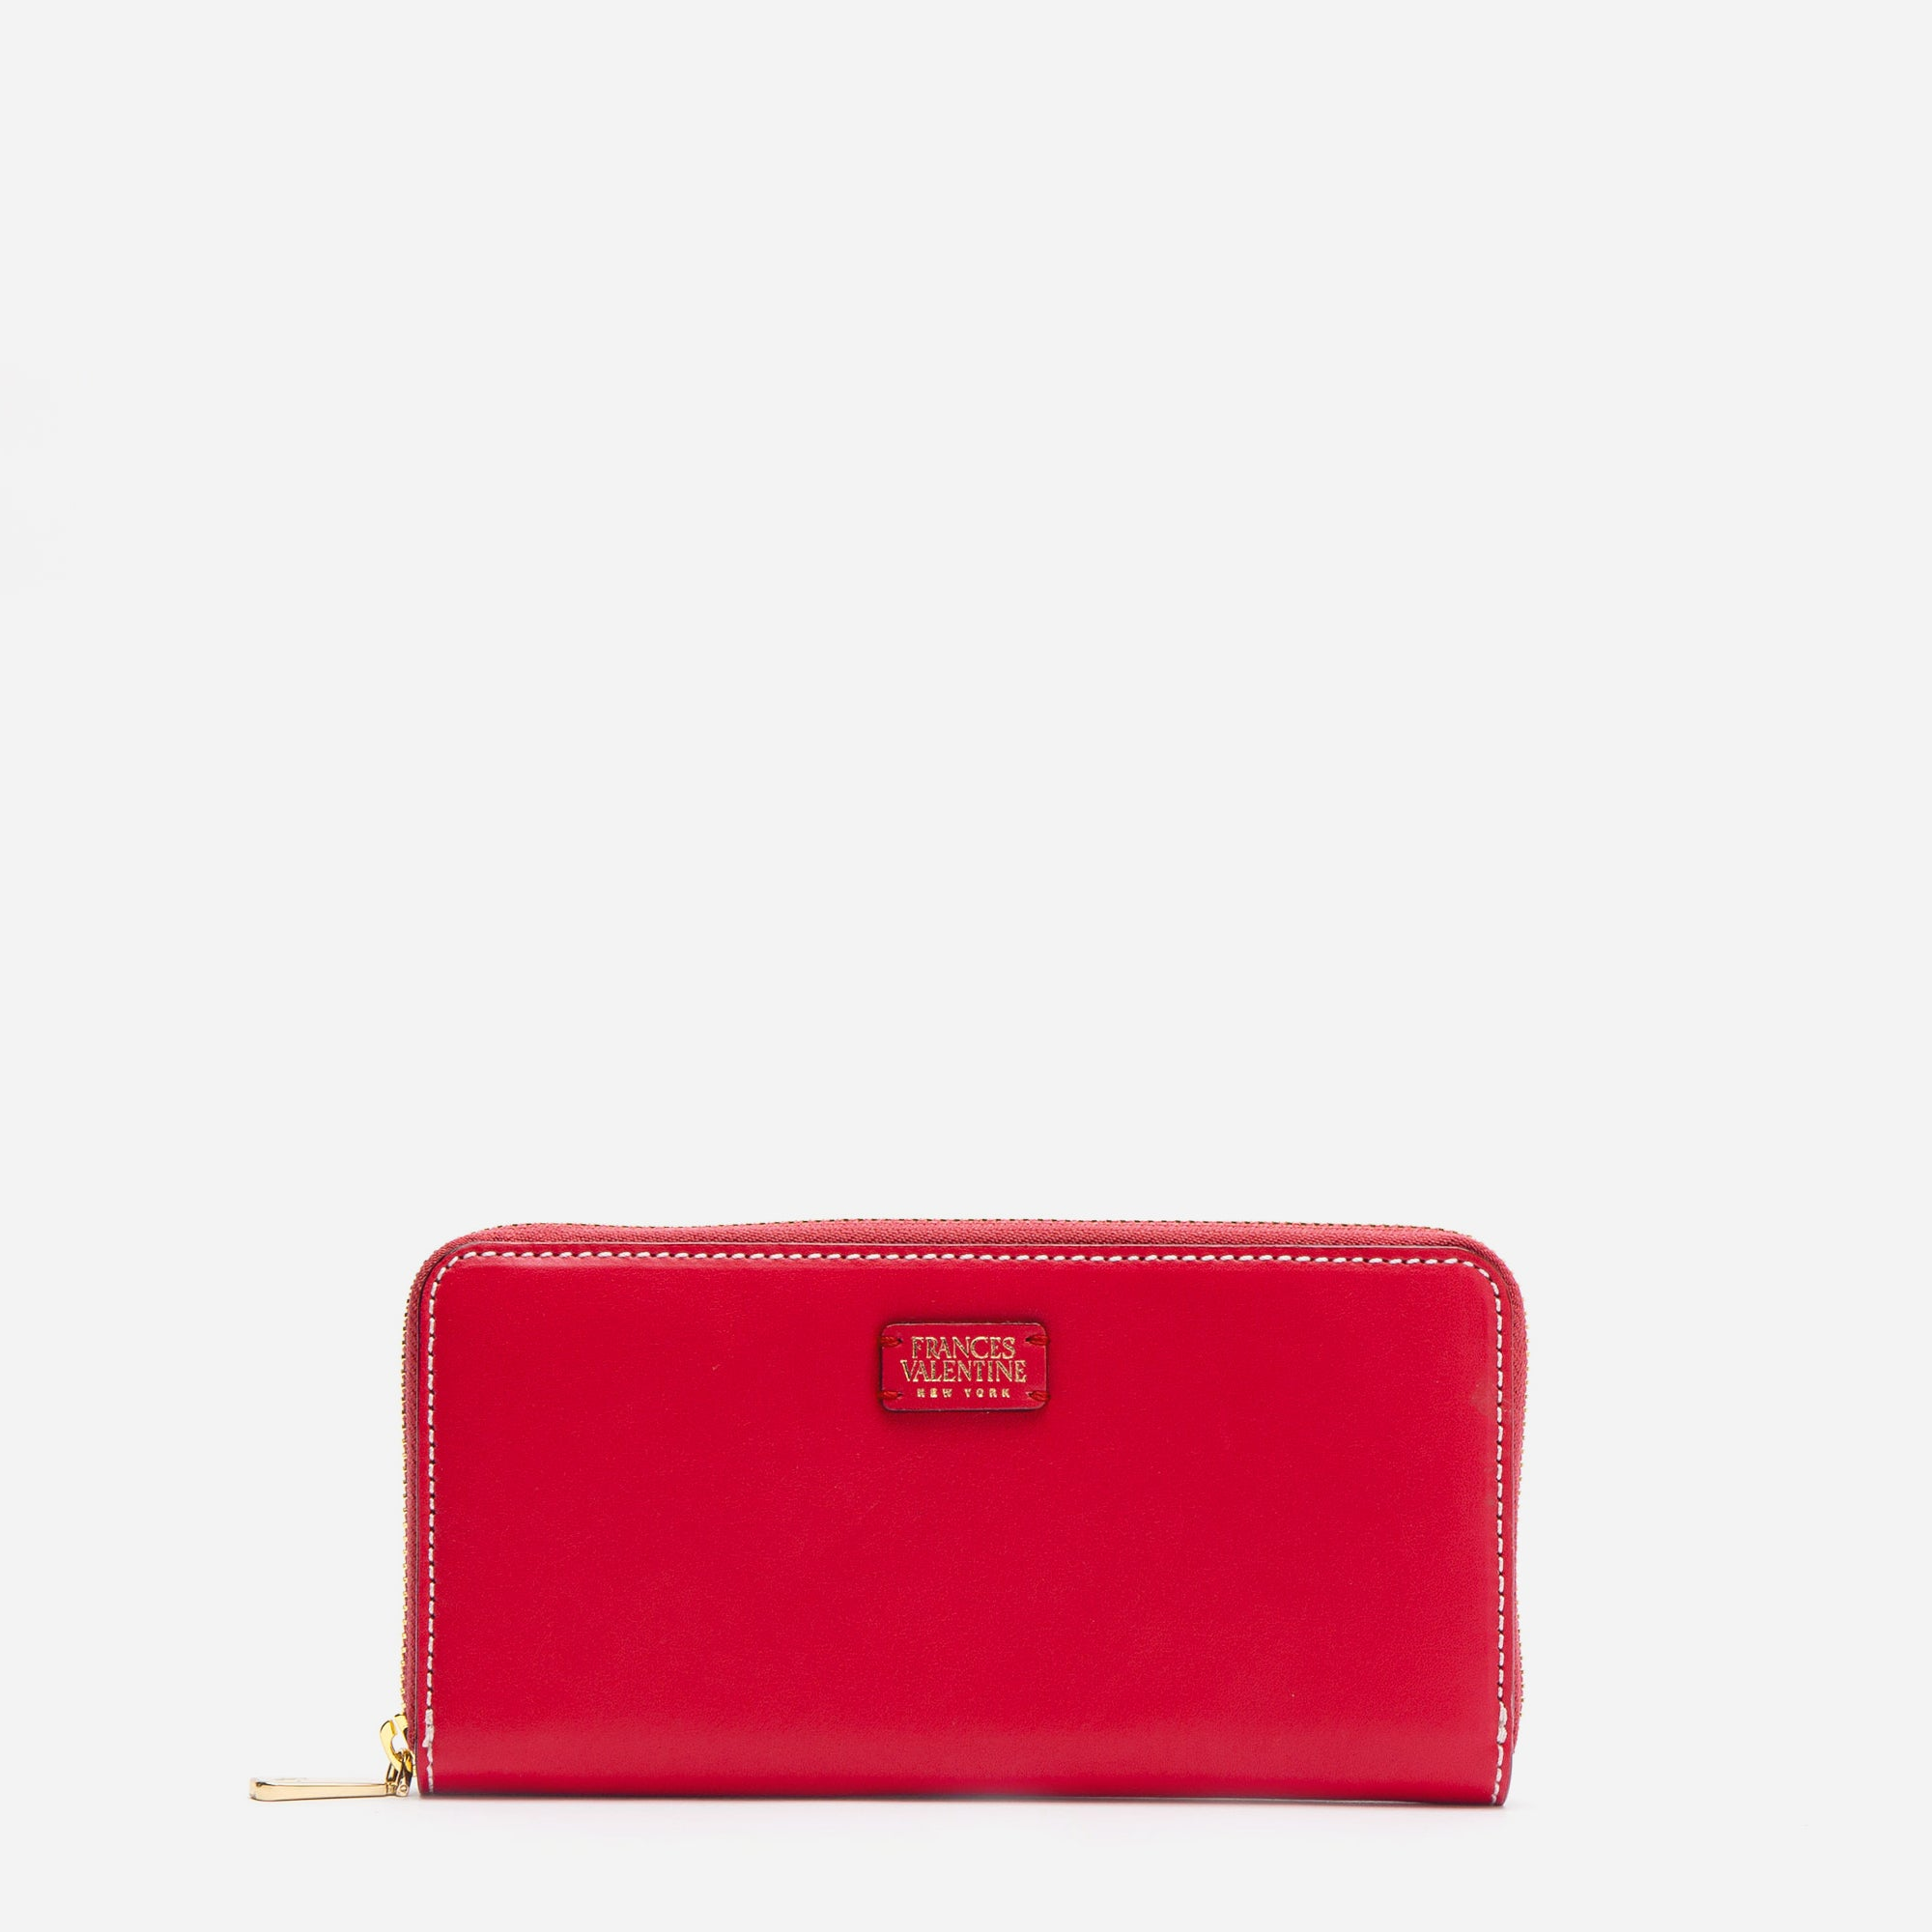 Washington Zip Wallet Red Light Blue - Frances Valentine